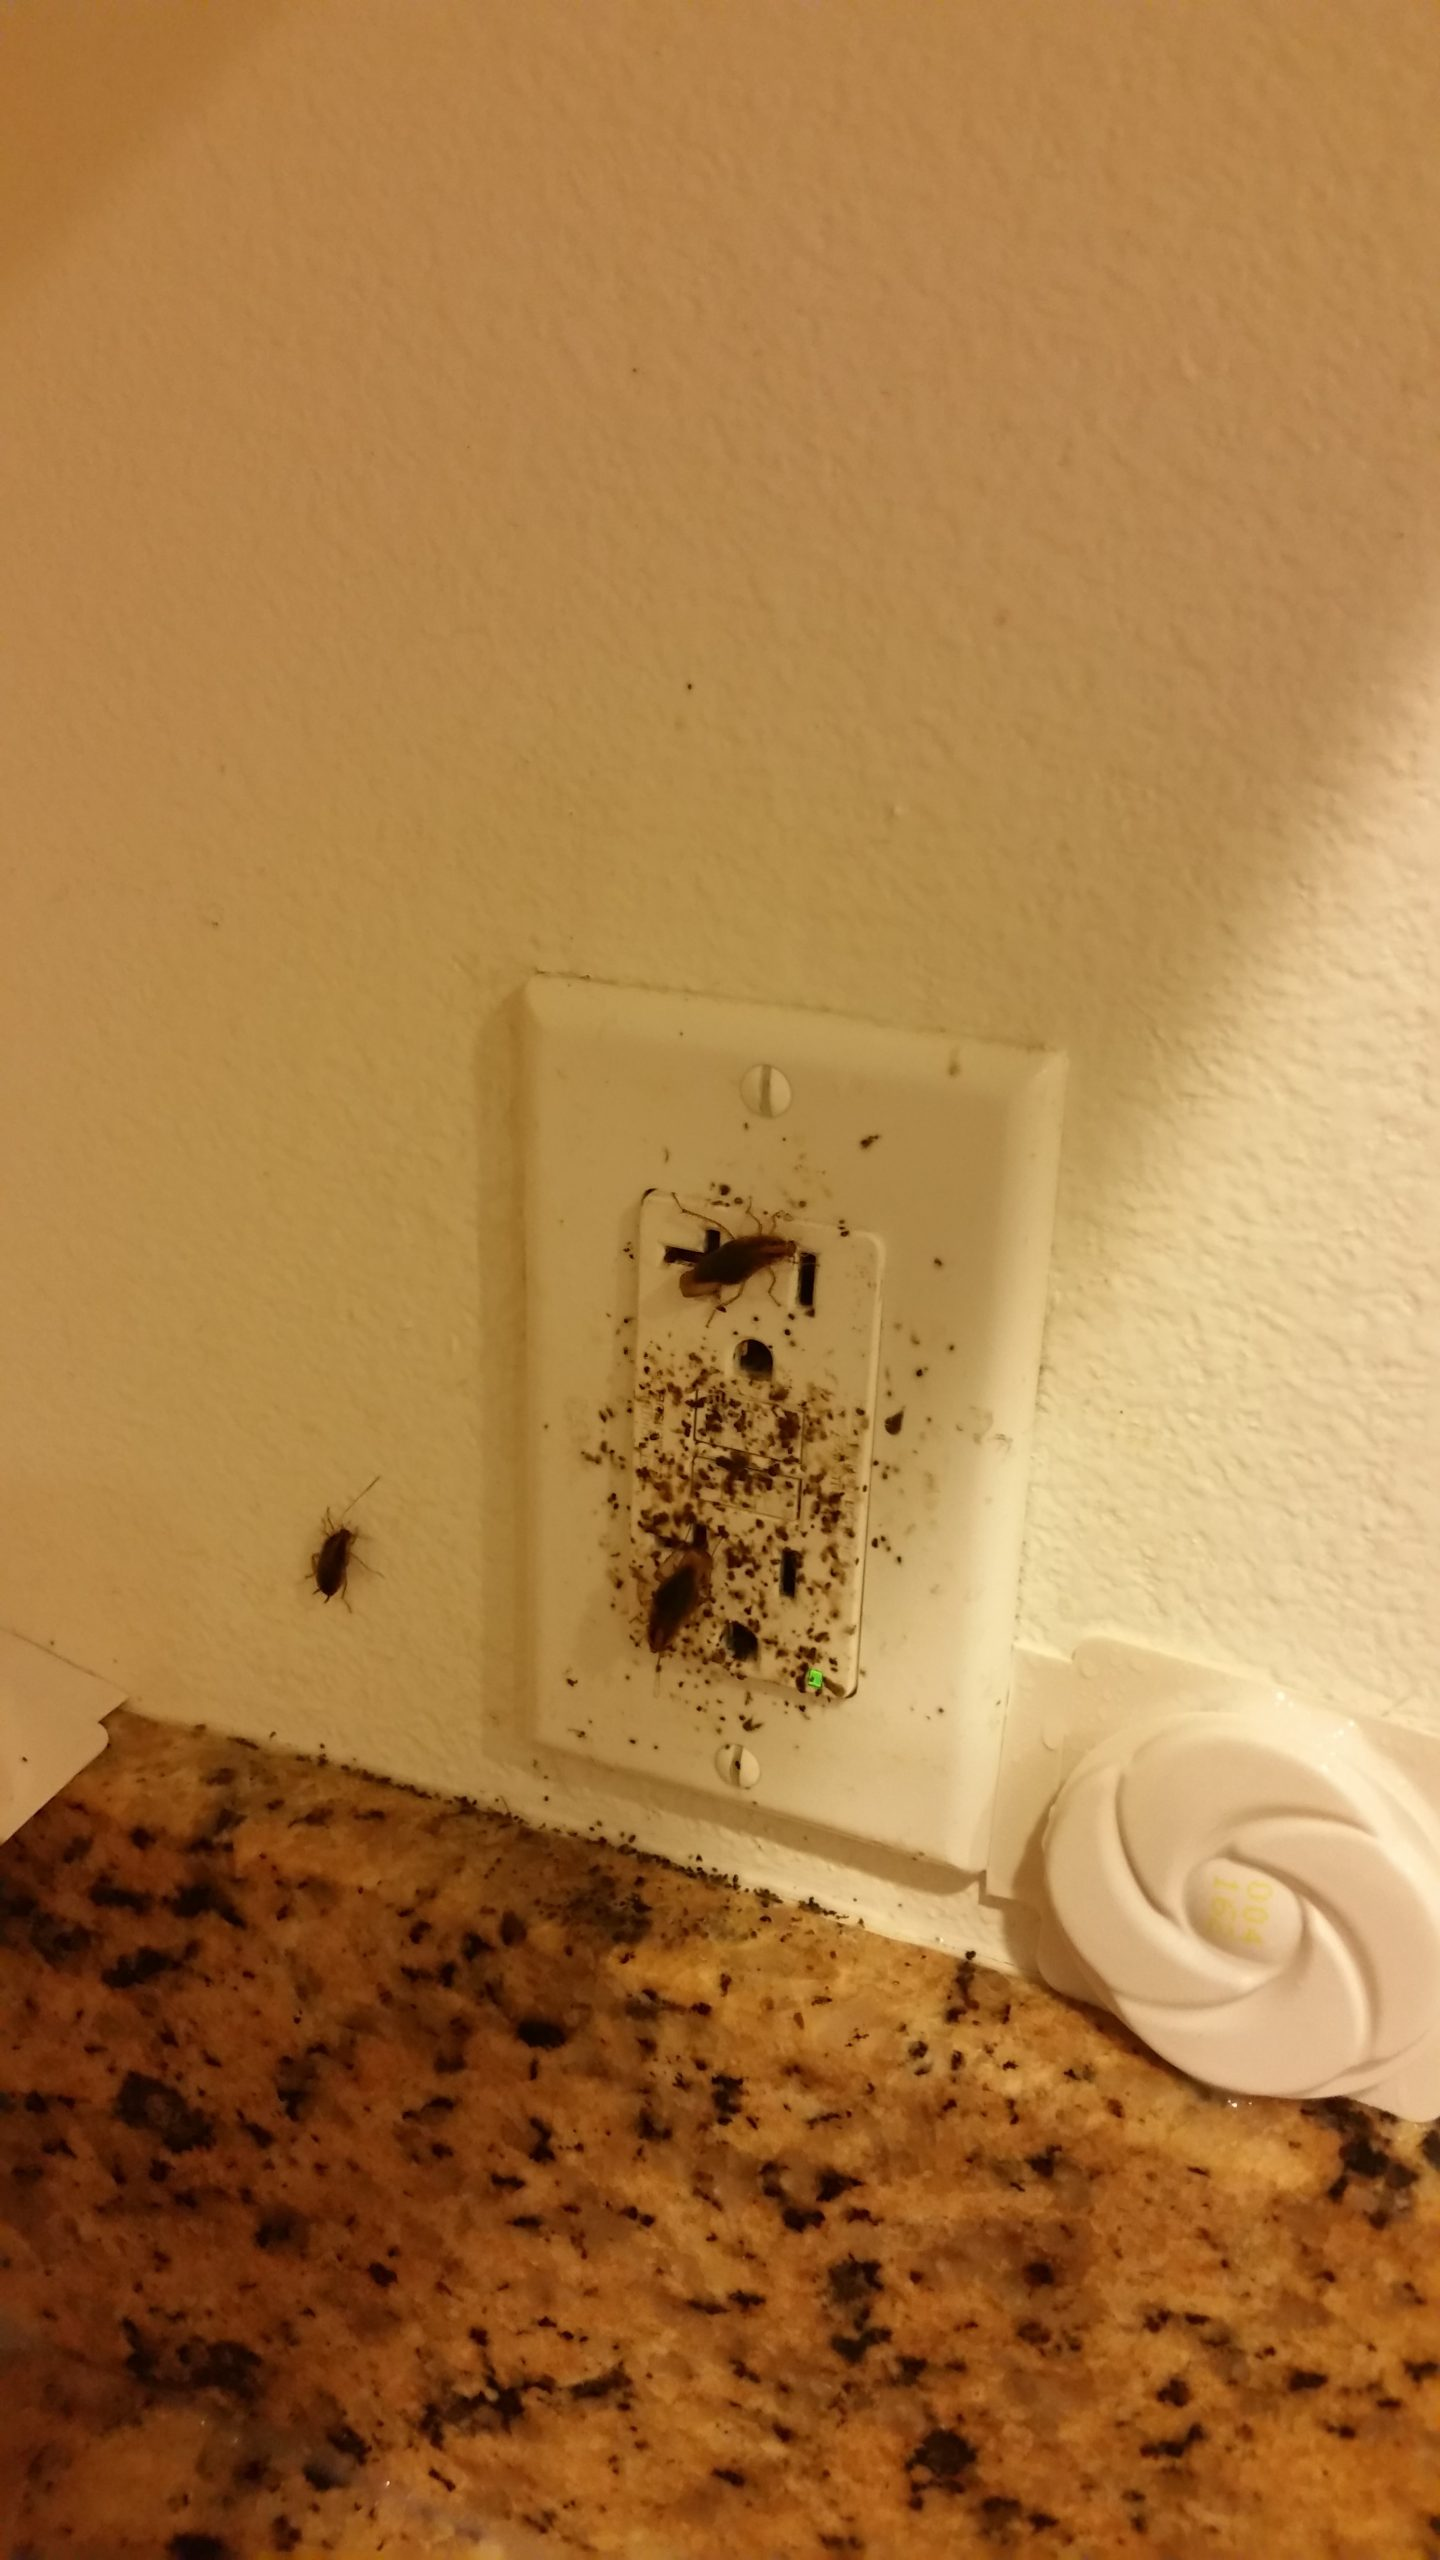 German Cockroaches wall outlet.